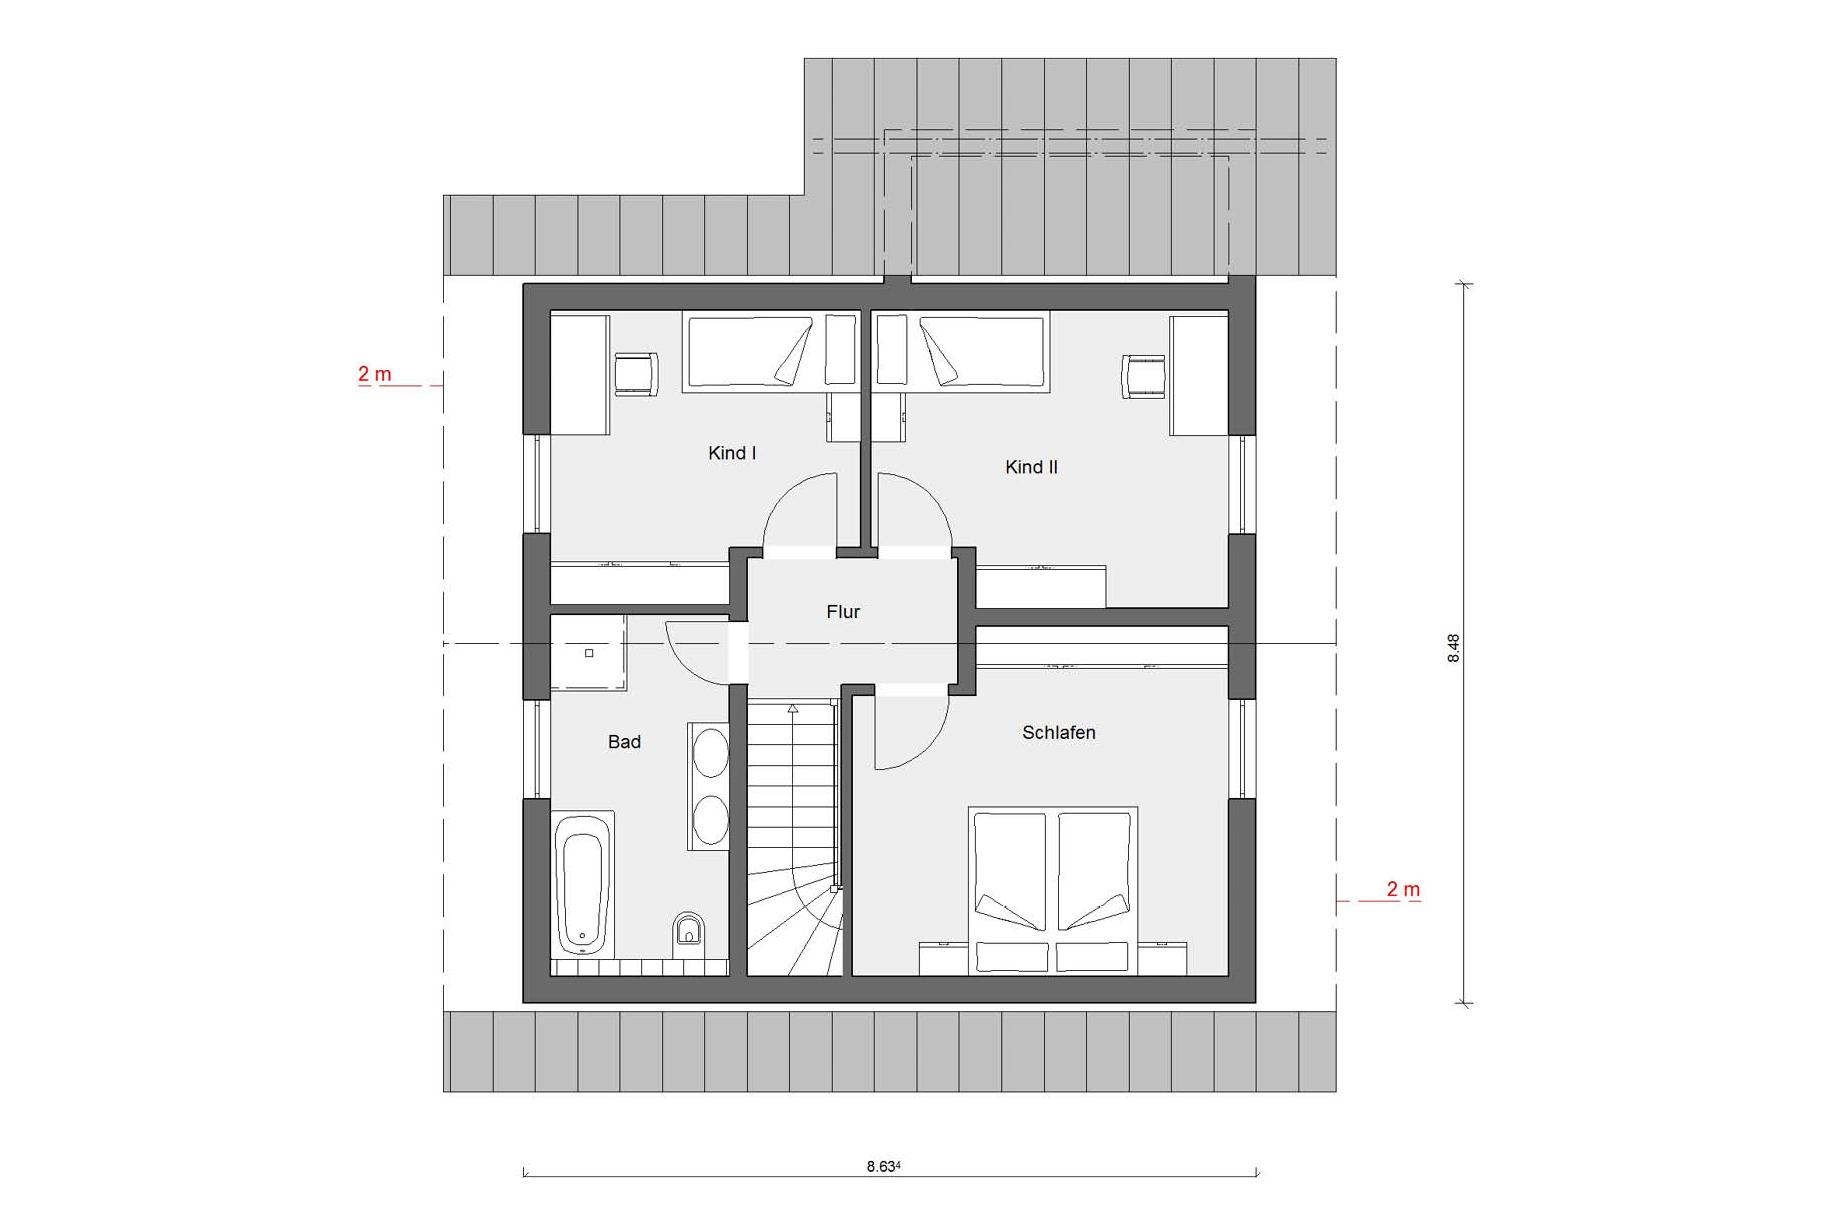 Attic floor plan E 15-126.7 Attractive architecture